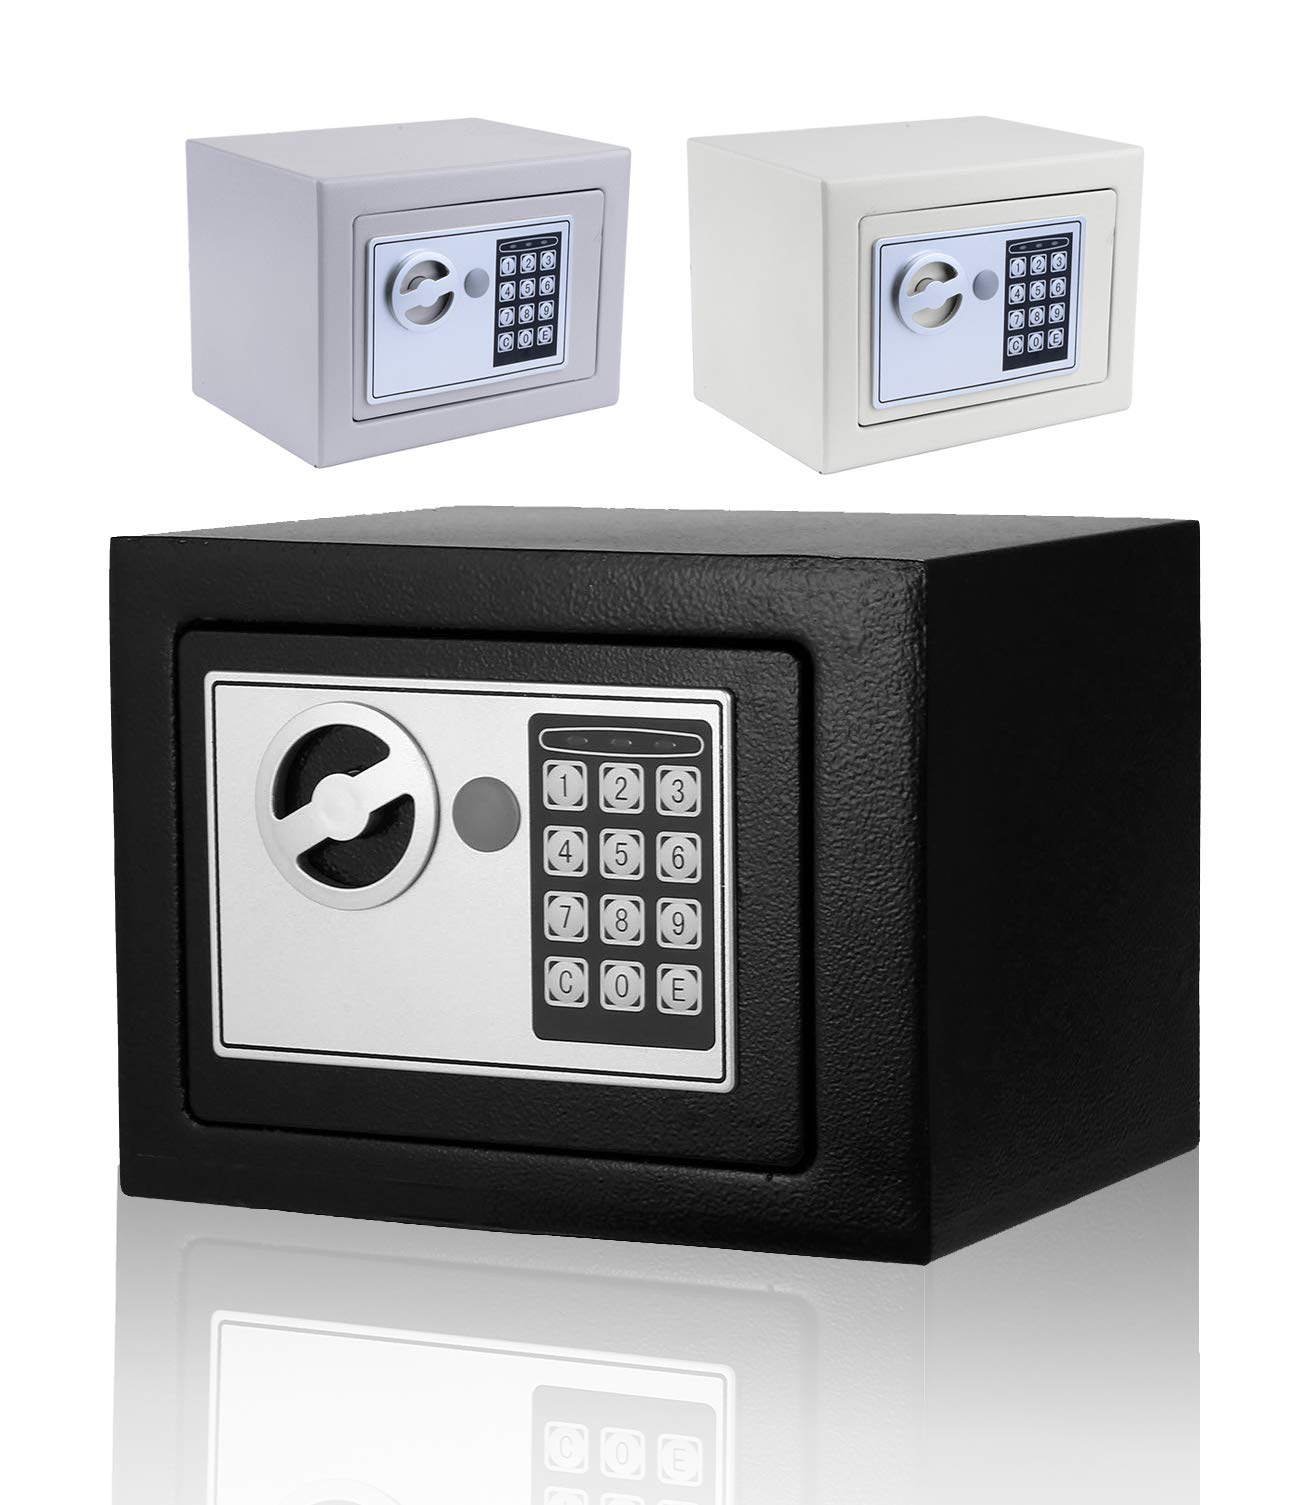 Moroly Security Safe with Digital Electronic Lock, Office/Home Safe Box, Steel Alloy Safe - Includes Keys and Batteries (US Stock) (Black-New) by Moroly